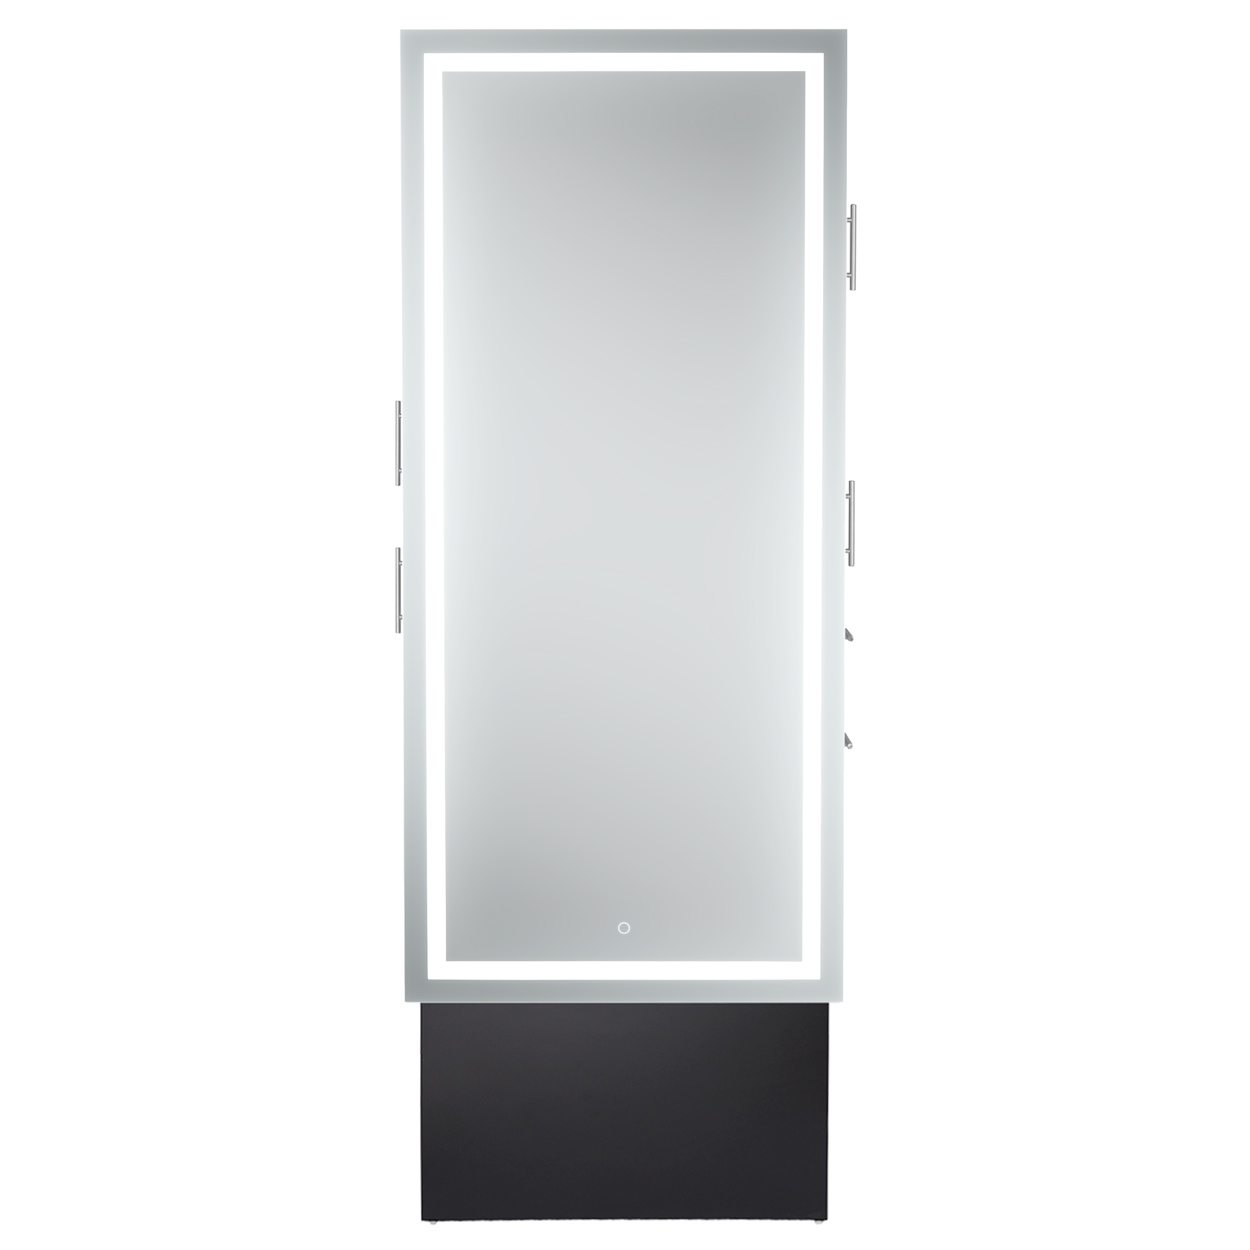 Double-Sided LED Lighted Mirror Styling Station alternative product image 1